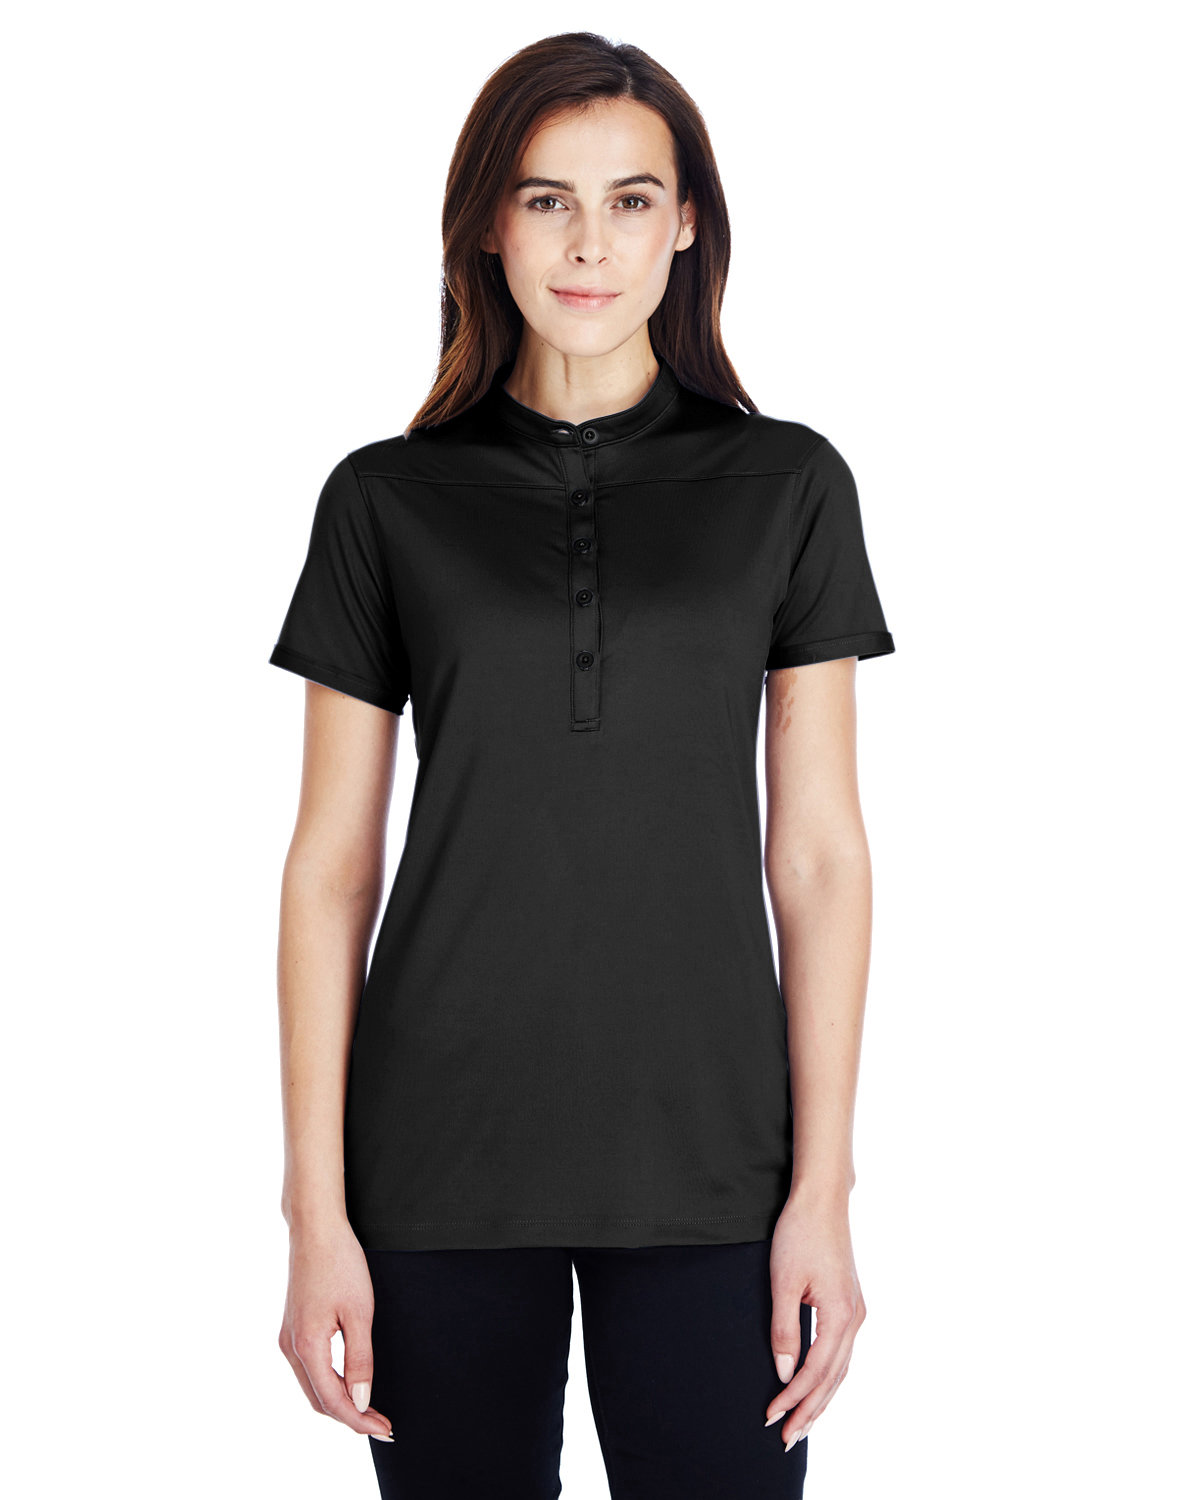 Under Armour SuperSale Ladies' Corporate Performance Polo 2.0 BLACK/ WHITE _001